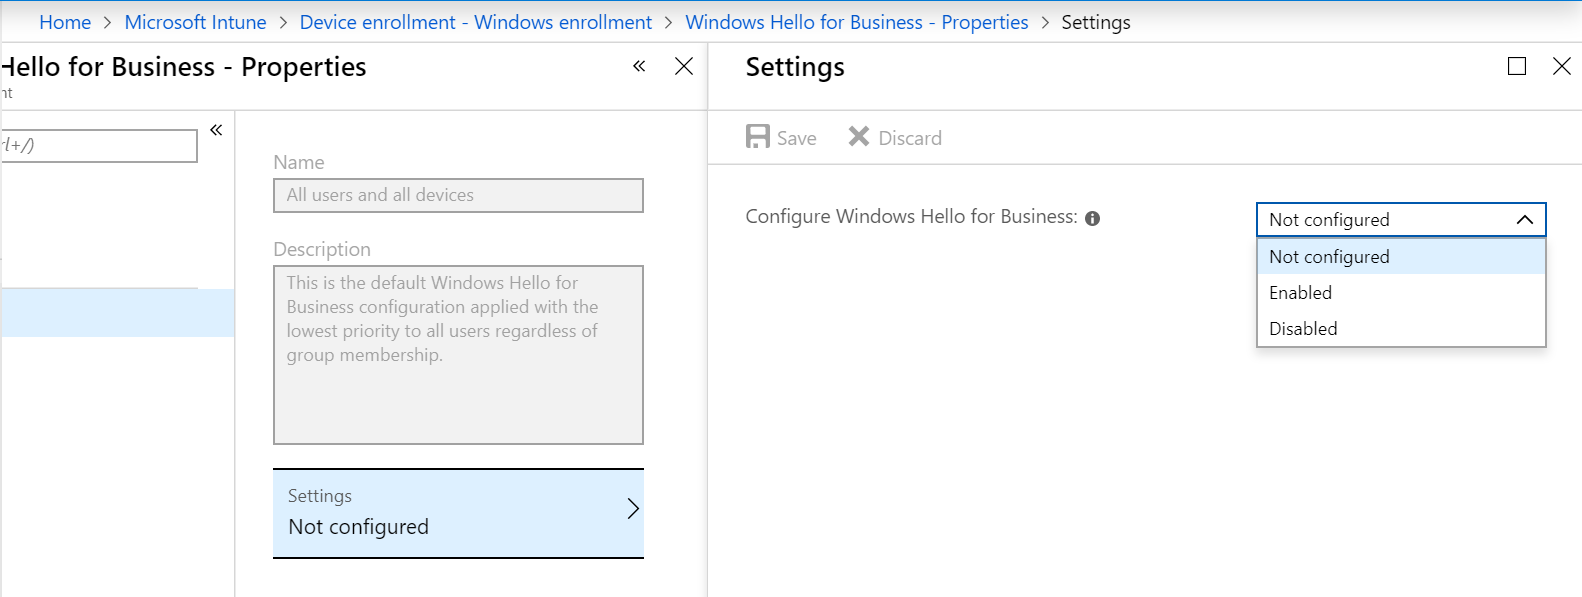 Can I use convenience PIN with Azure AD? - Yes · Issue #4037